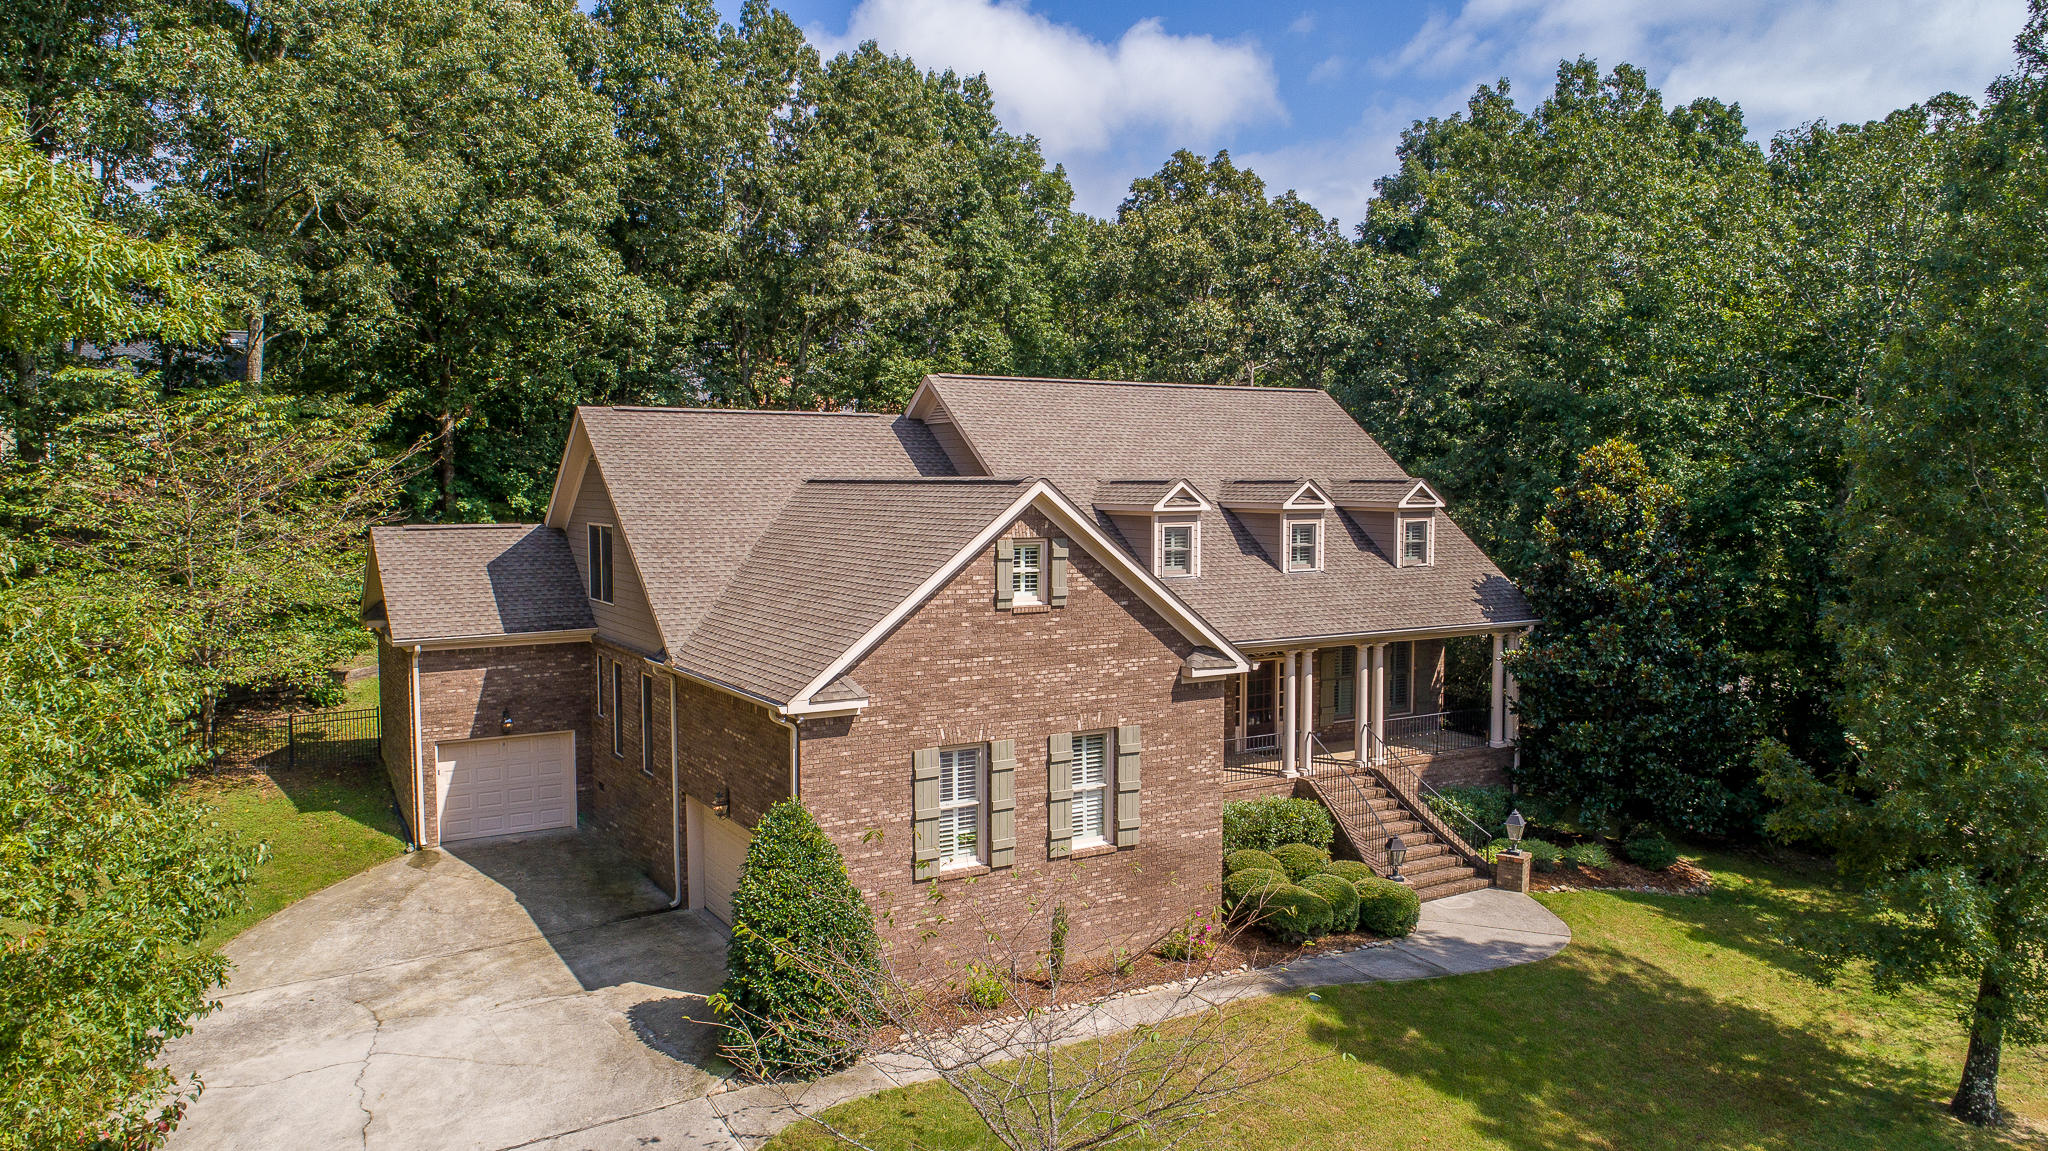 3219 Cloudcrest Tr, Signal Mountain, TN 37377